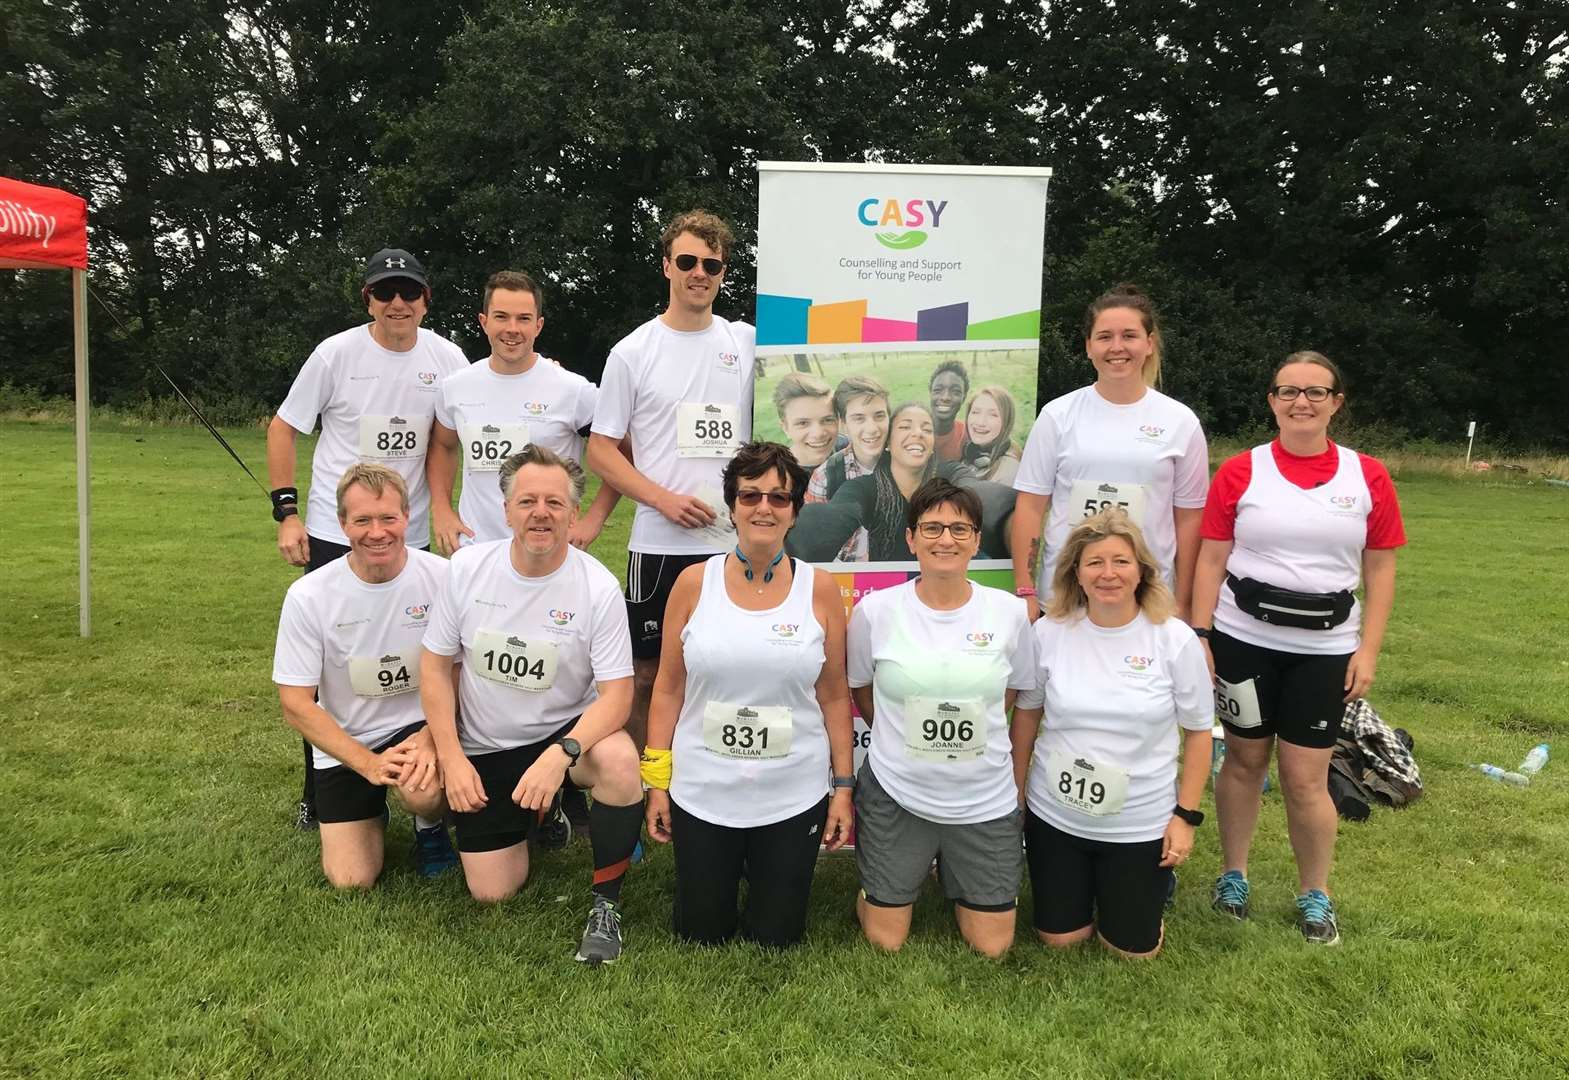 Runners raise £10,000 for charity